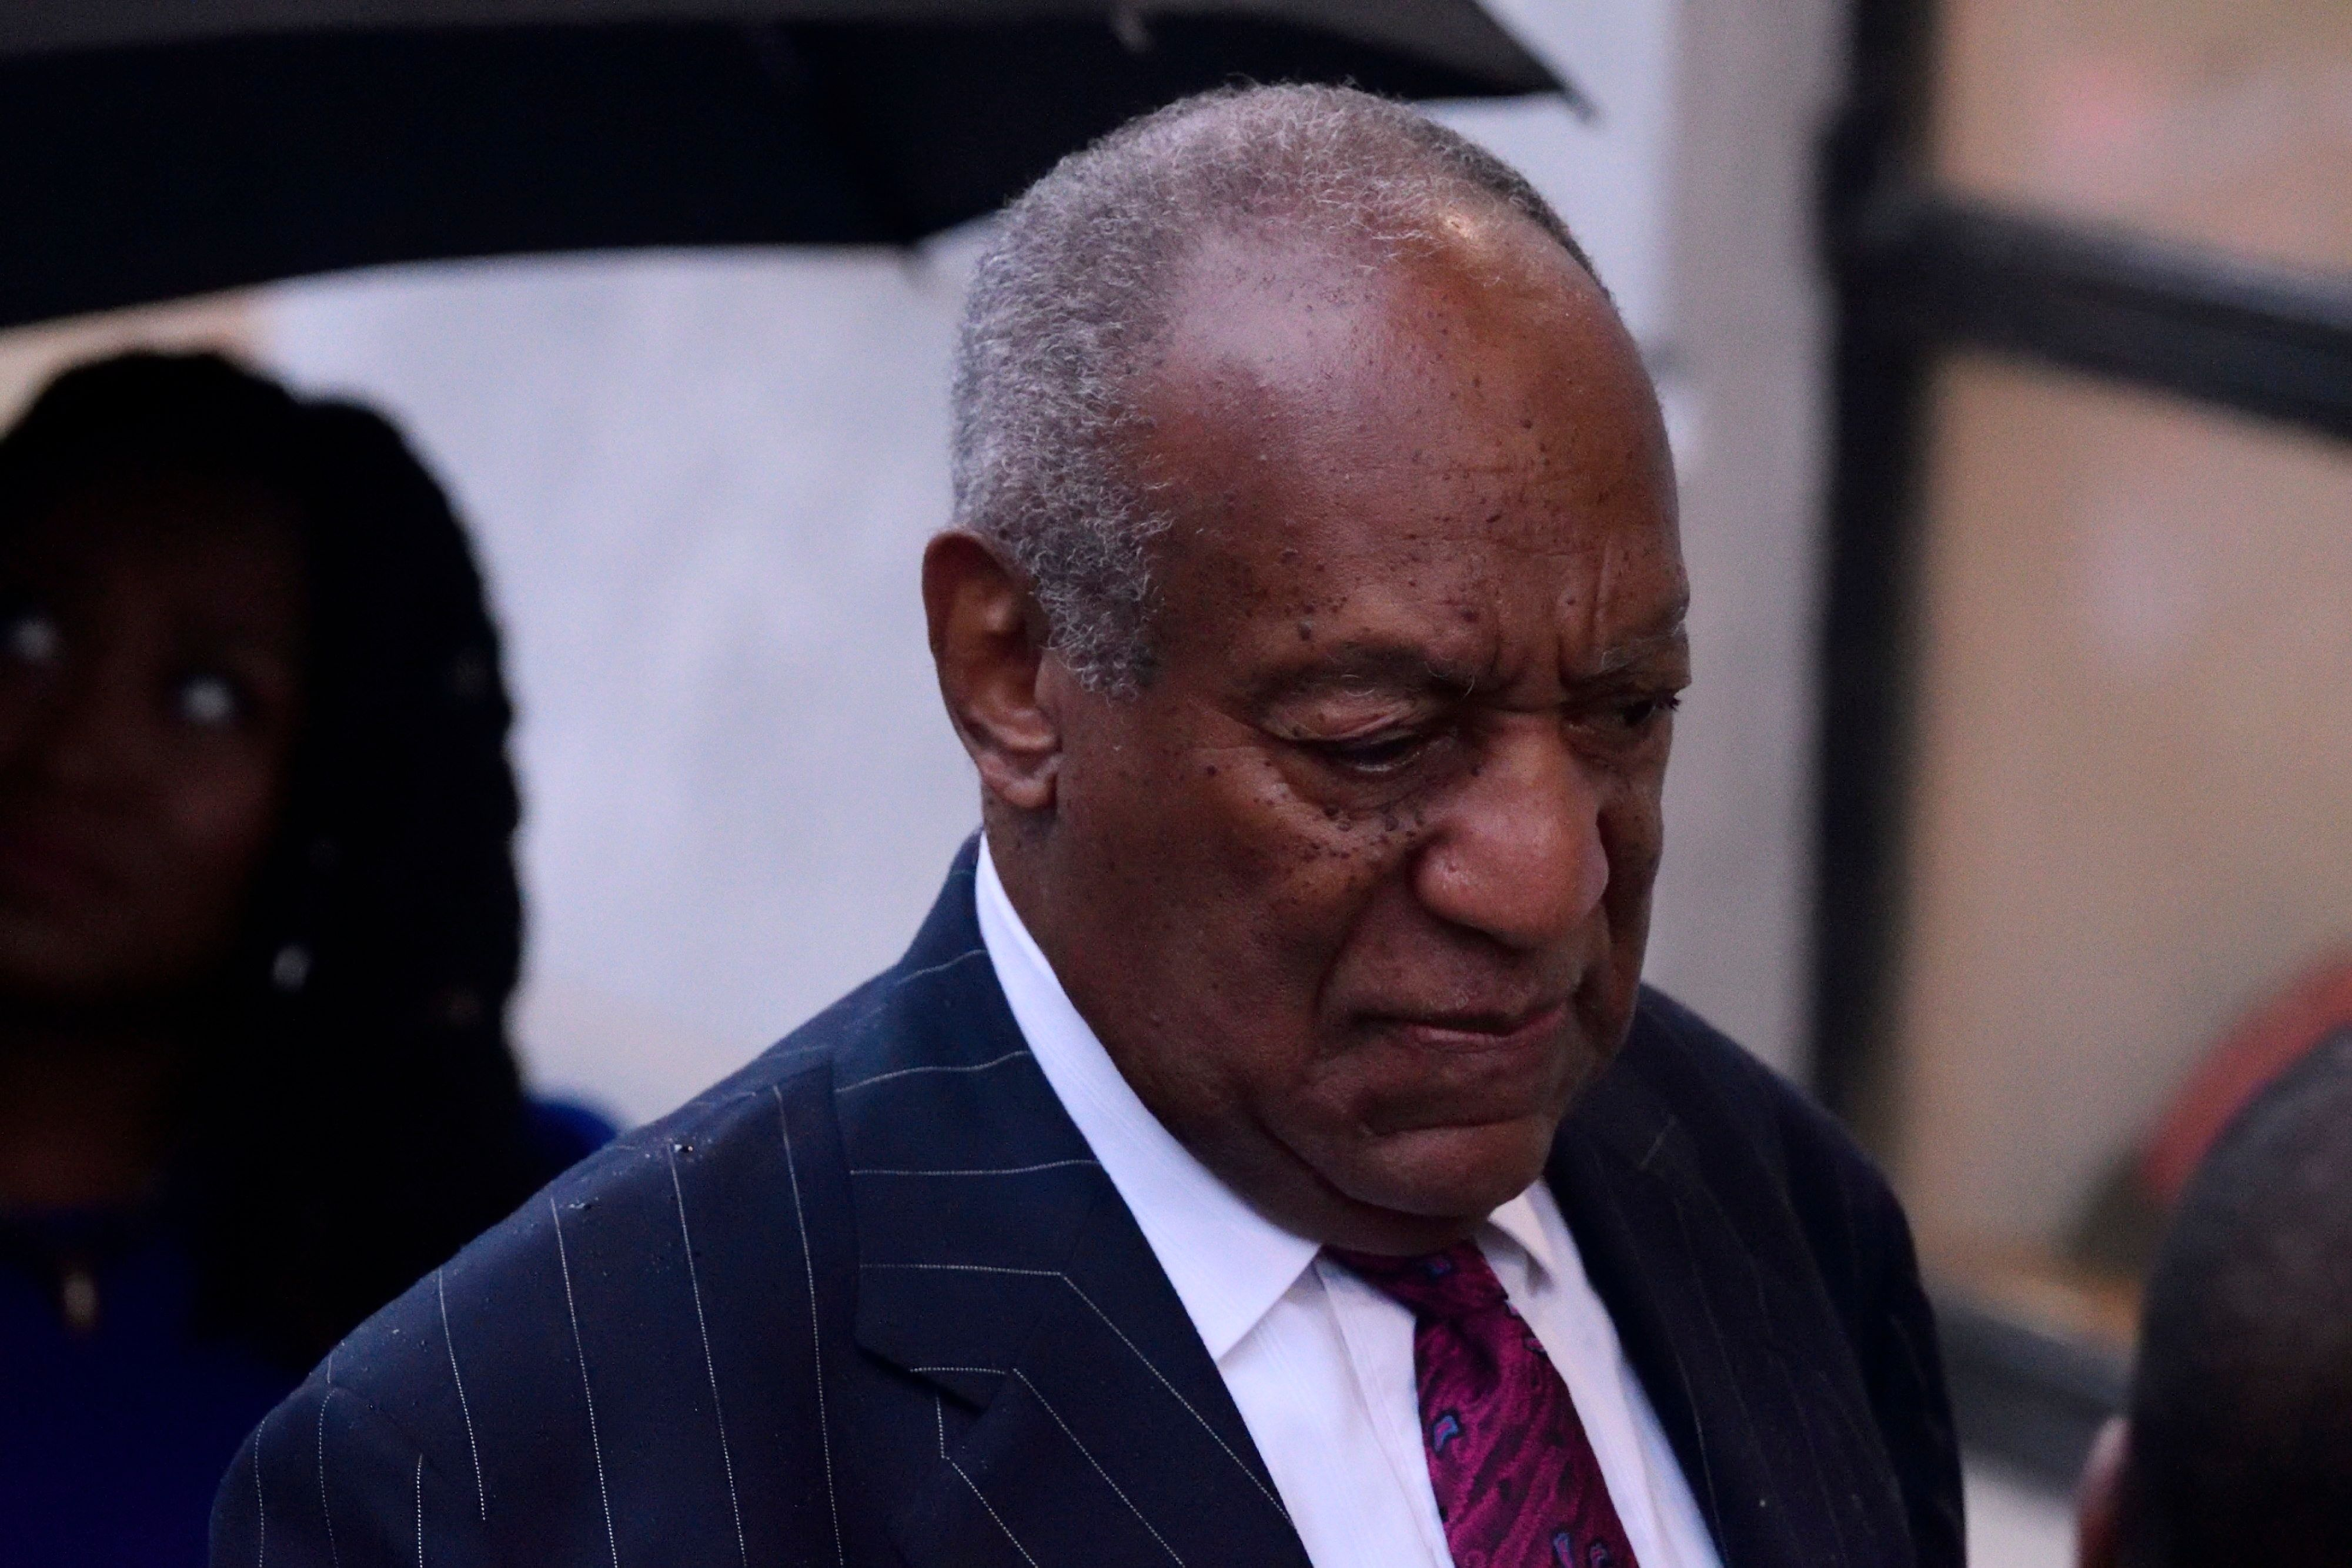 US Entertainer Bill Cosby arrives for a scenting hearing in Norristown, PA, on September 25, 2018. Cosby appears before Judge Steven O'Neil after a jury found the 81 year old entertainer guilty of three counts of aggravated indecent assault in a April 2018 retrial. (Photo by Bastiaan Slabbers/NurPhoto via Getty Images)